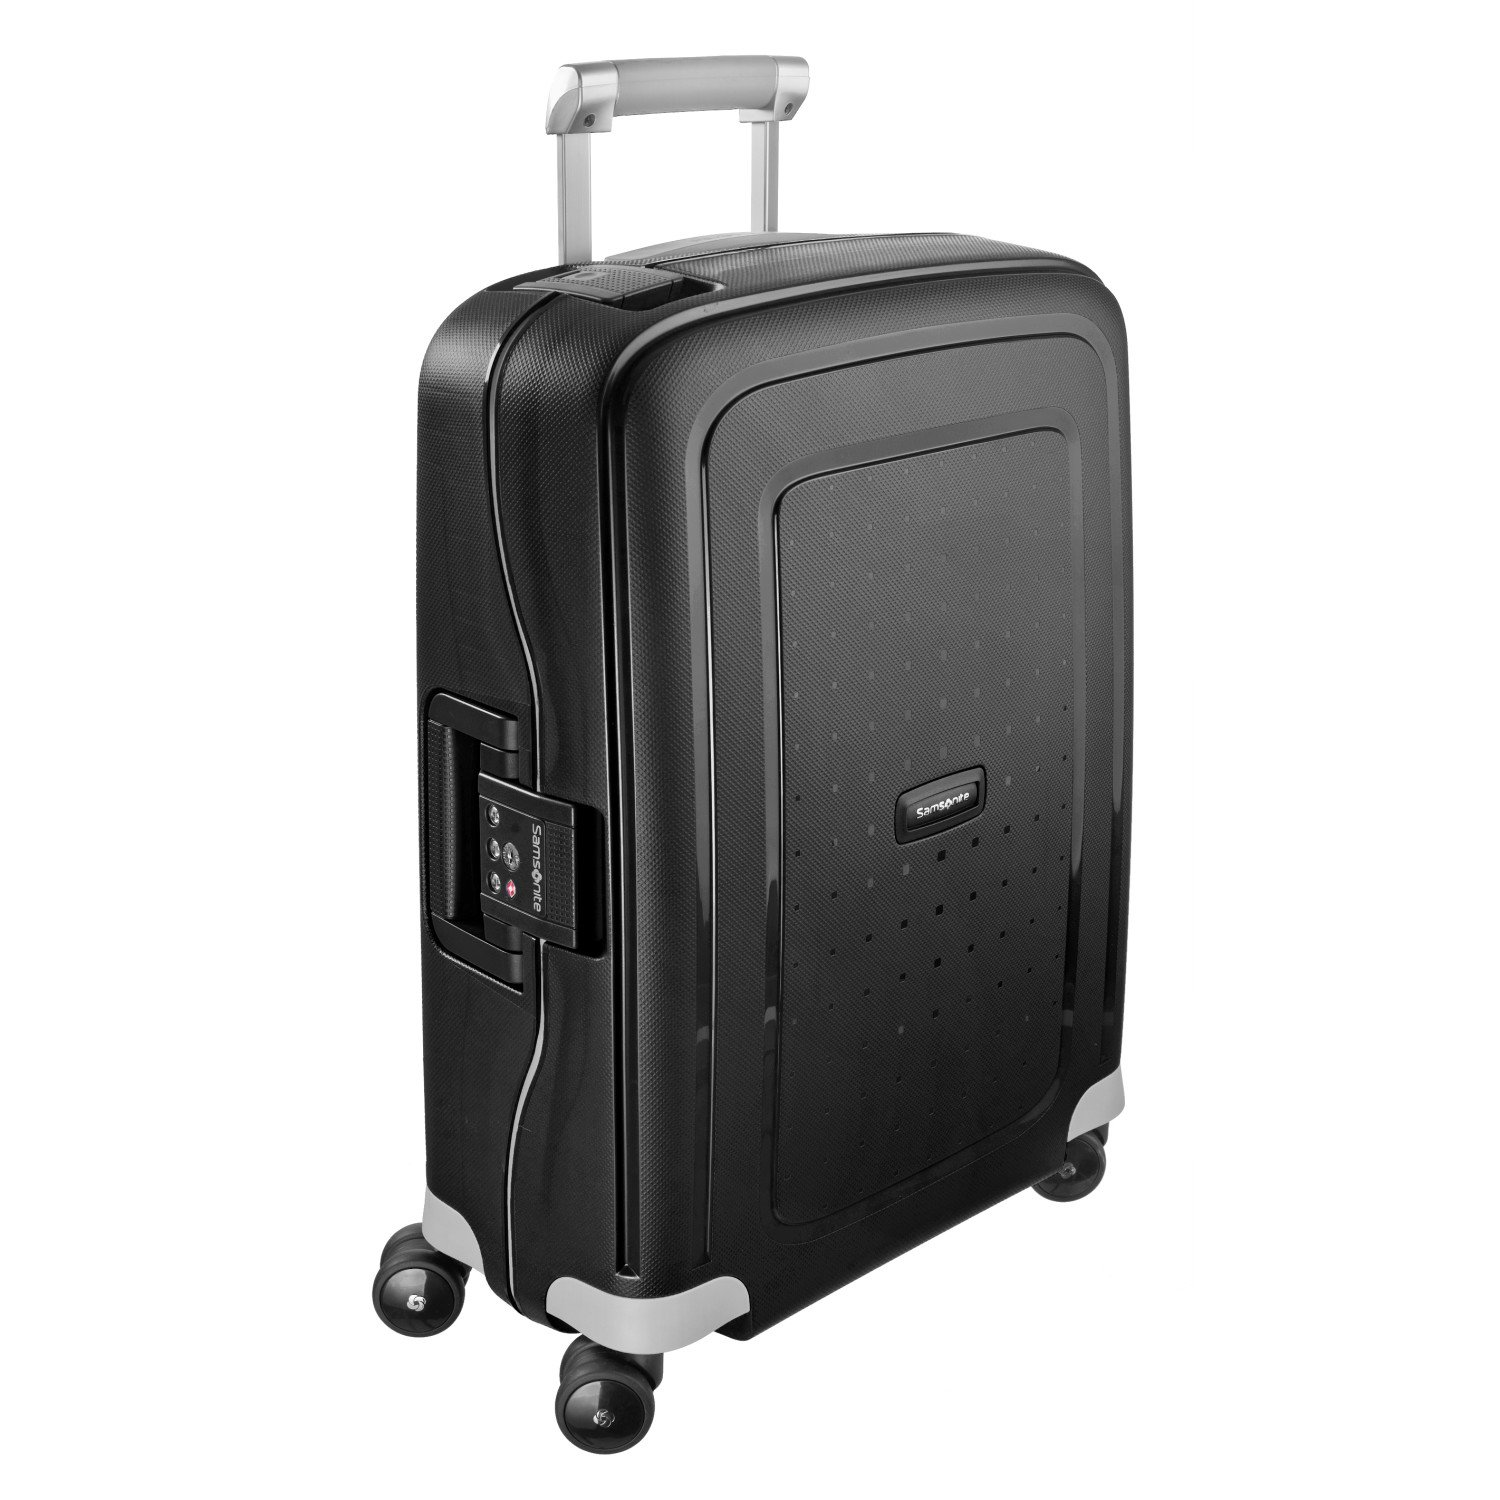 ec19f61b931 Amazon.com | Samsonite S'Cure Hardside Carry On Luggage with Spinner  Wheels, 20 Inch, Black | Luggage